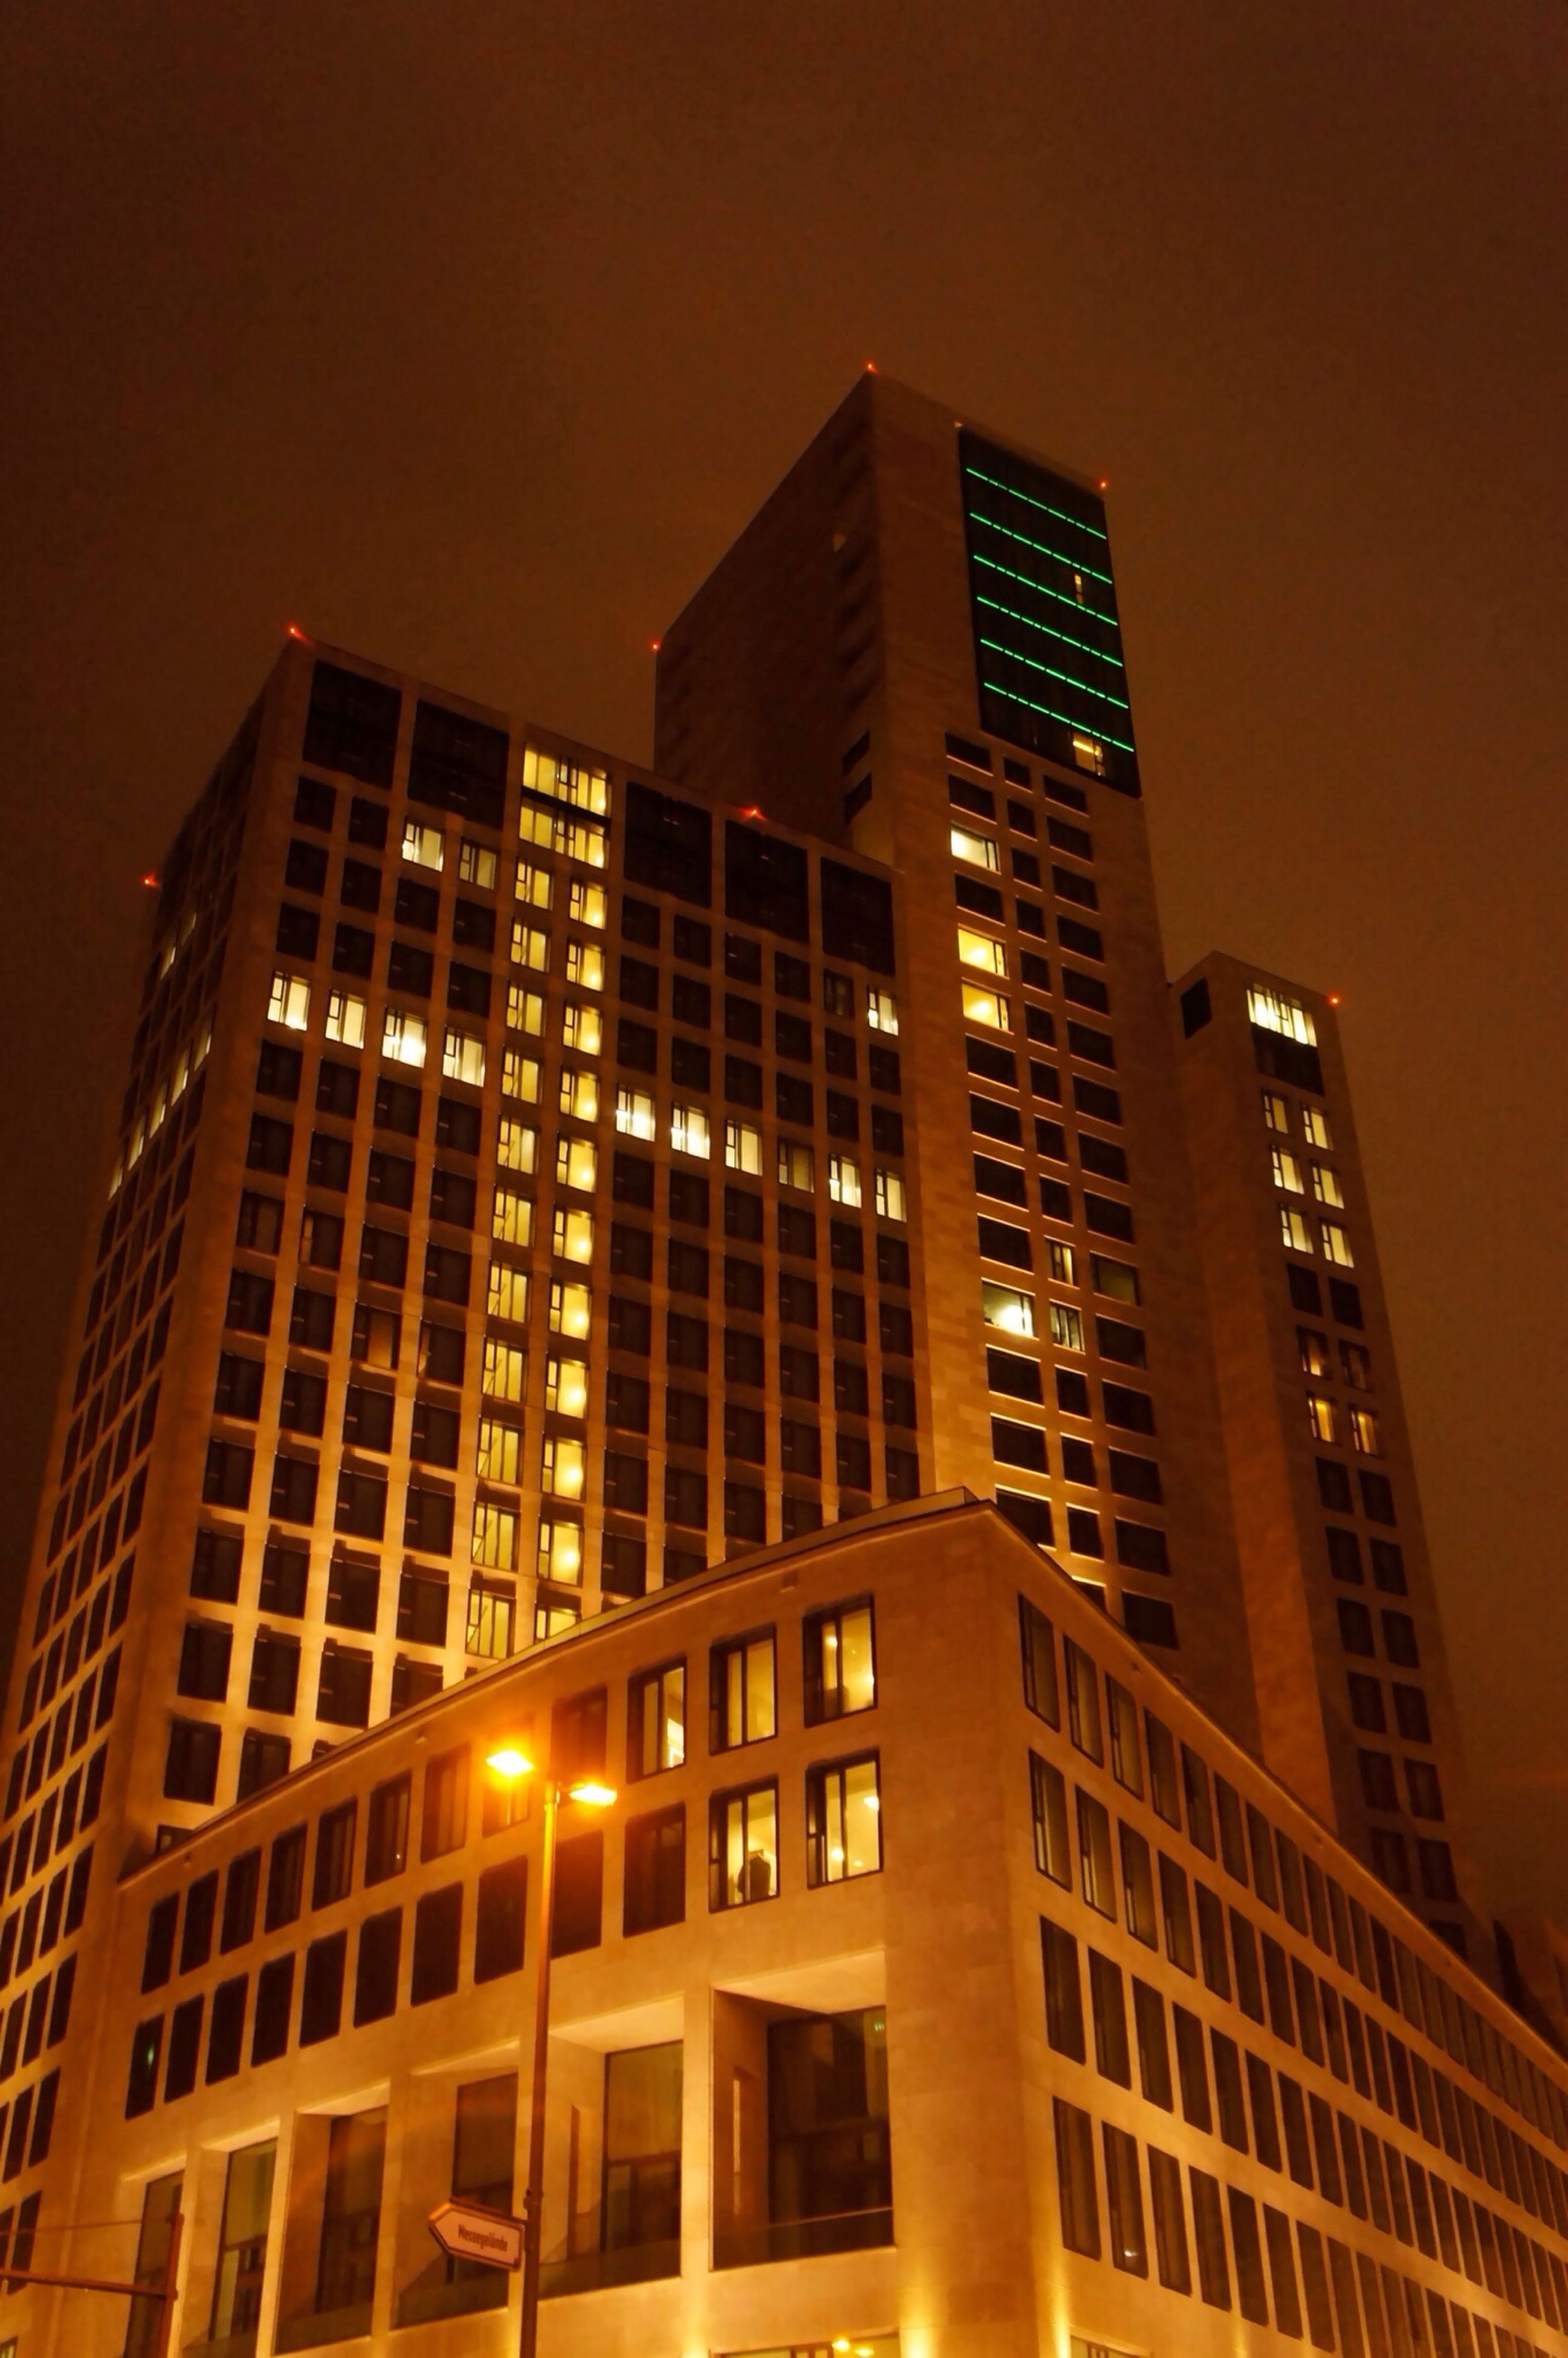 architecture, building exterior, built structure, illuminated, low angle view, city, night, modern, building, office building, skyscraper, window, tall - high, tower, residential building, sky, no people, outdoors, residential structure, street light